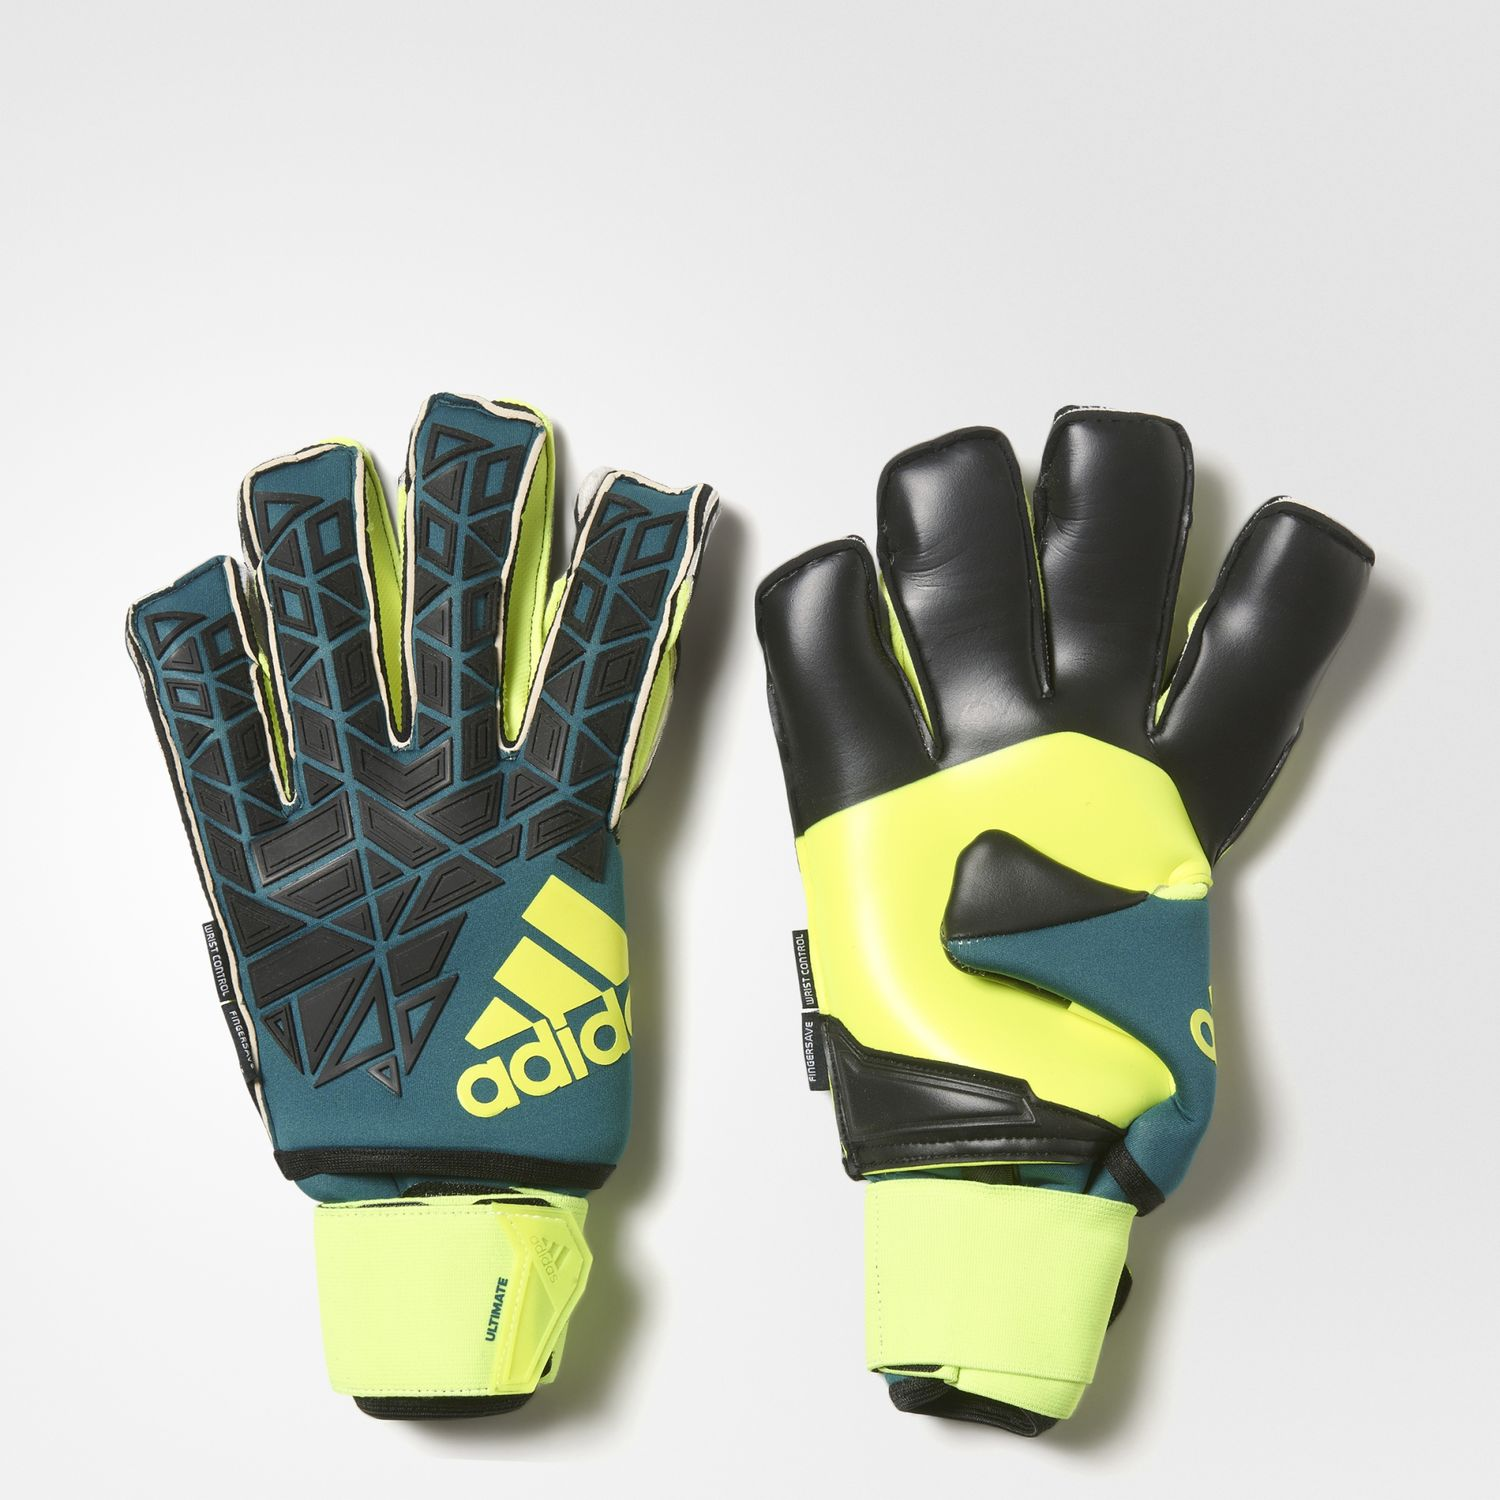 ACE Trans Ultimate Fingersave Goalkeeper Glove